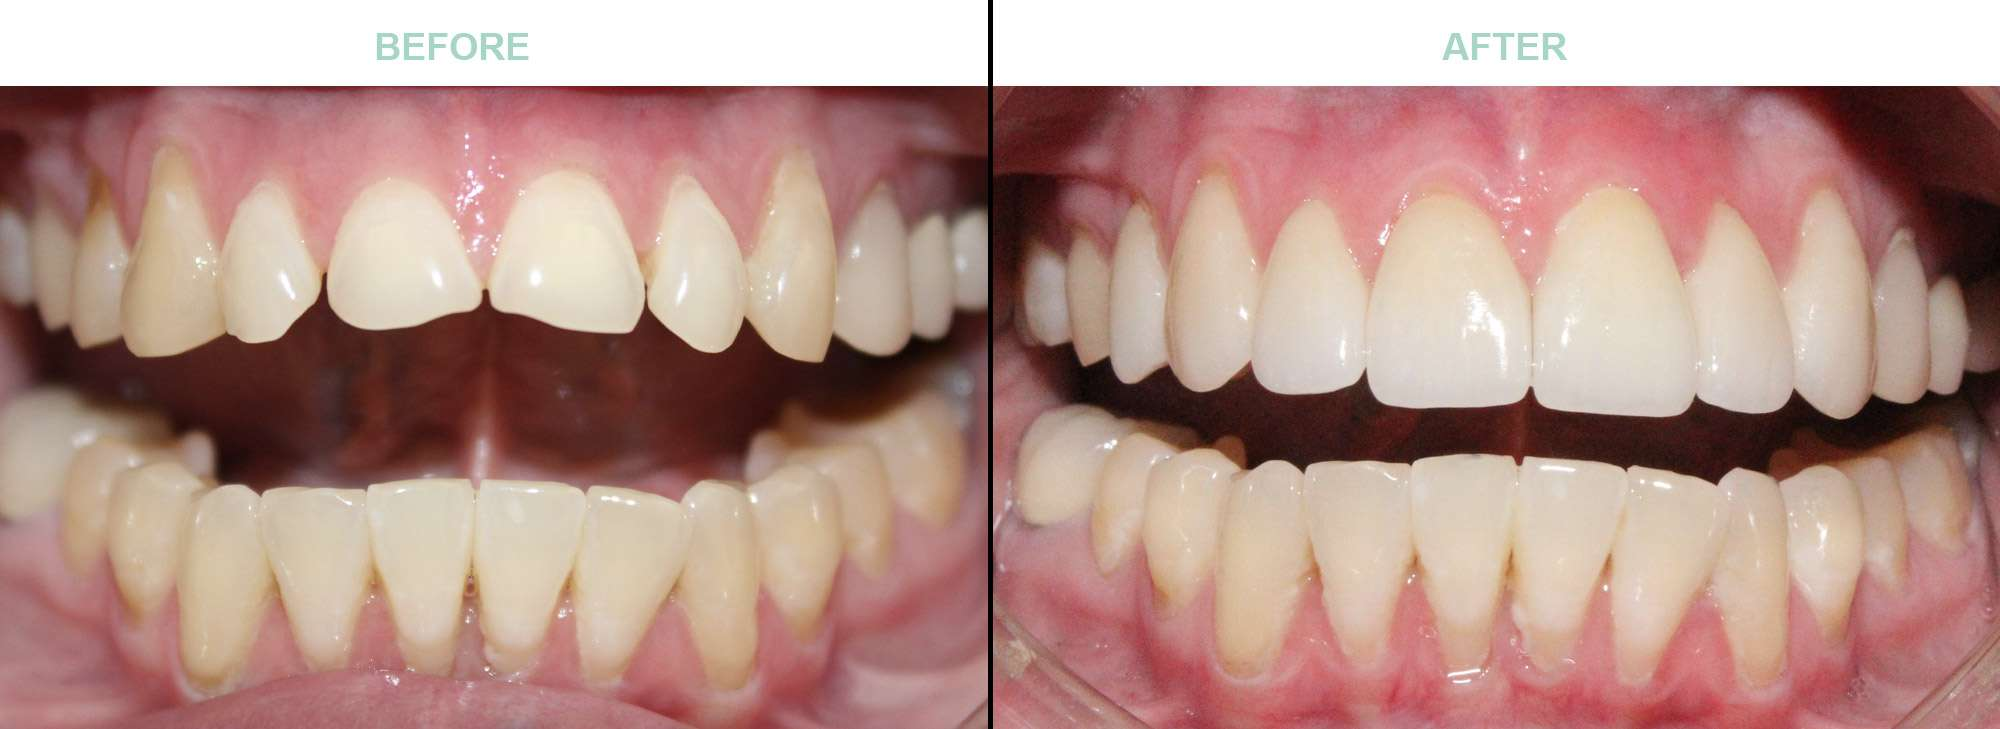 before-after-cosmetic-dentistry-glendale-az